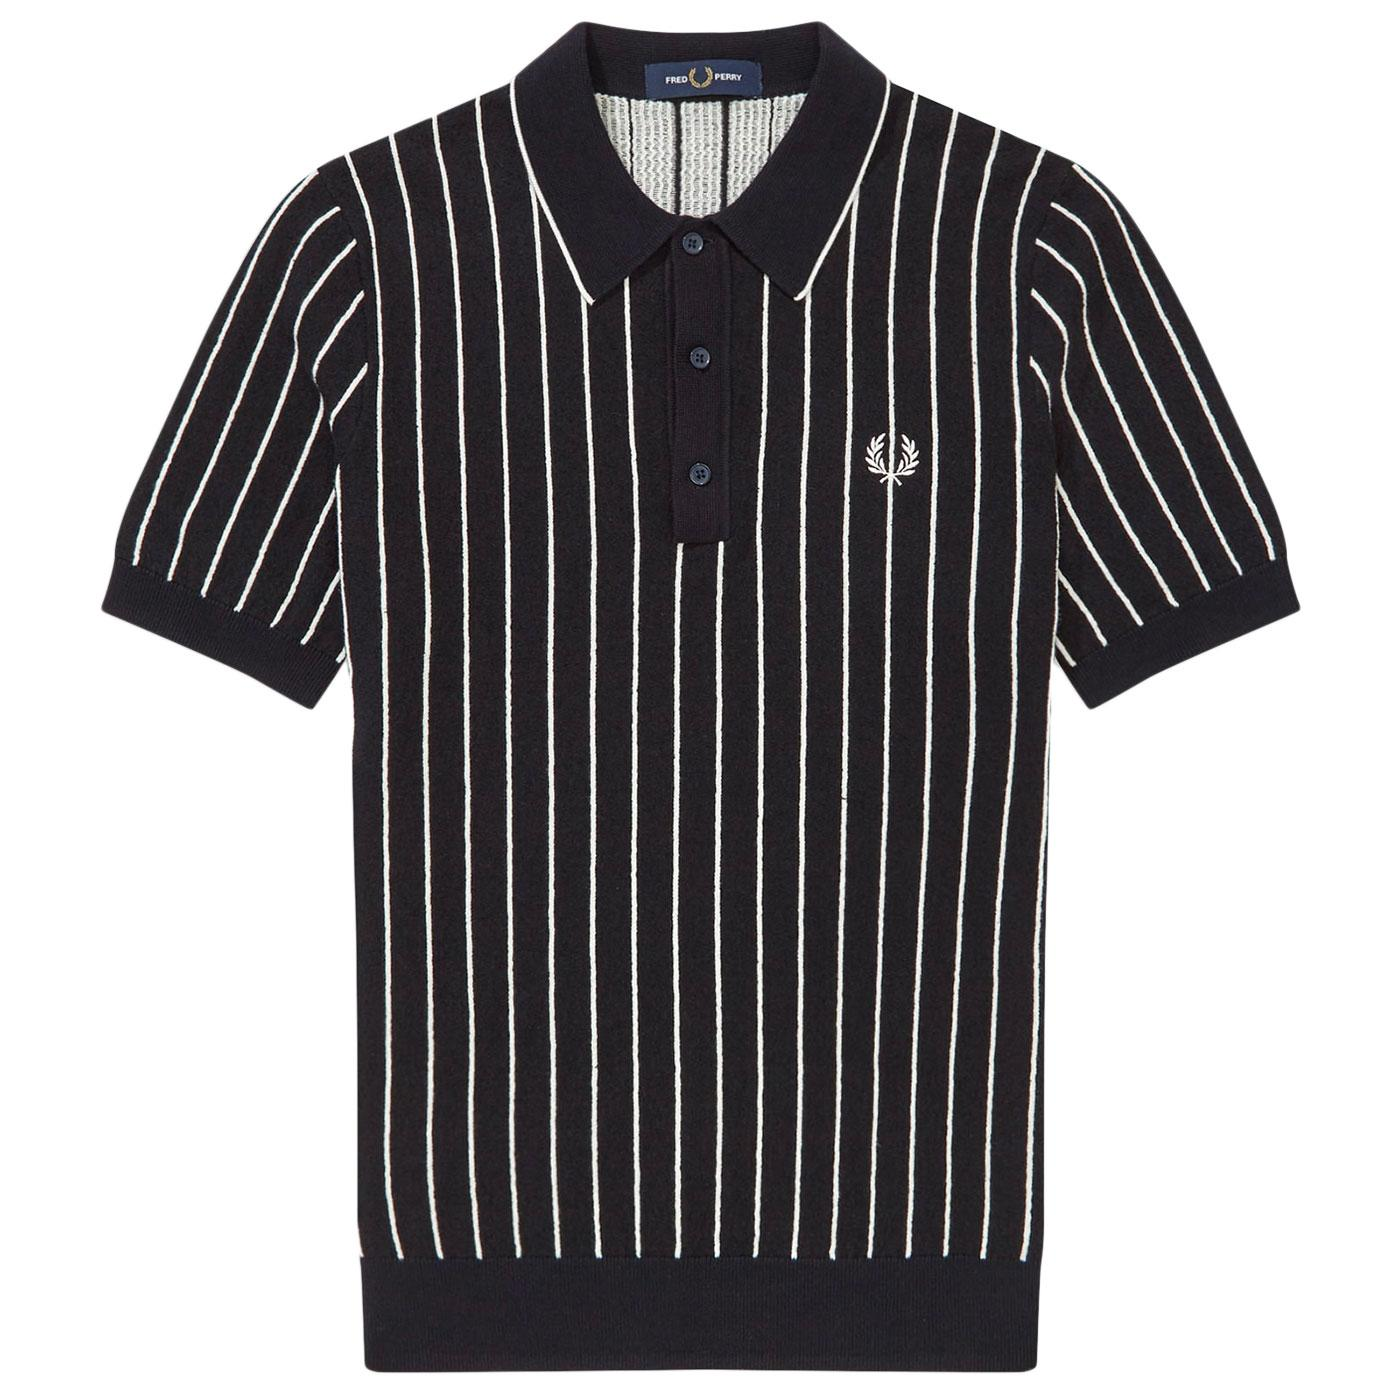 FRED PERRY K8523 Mod Stripe Knitted Polo Top NAVY